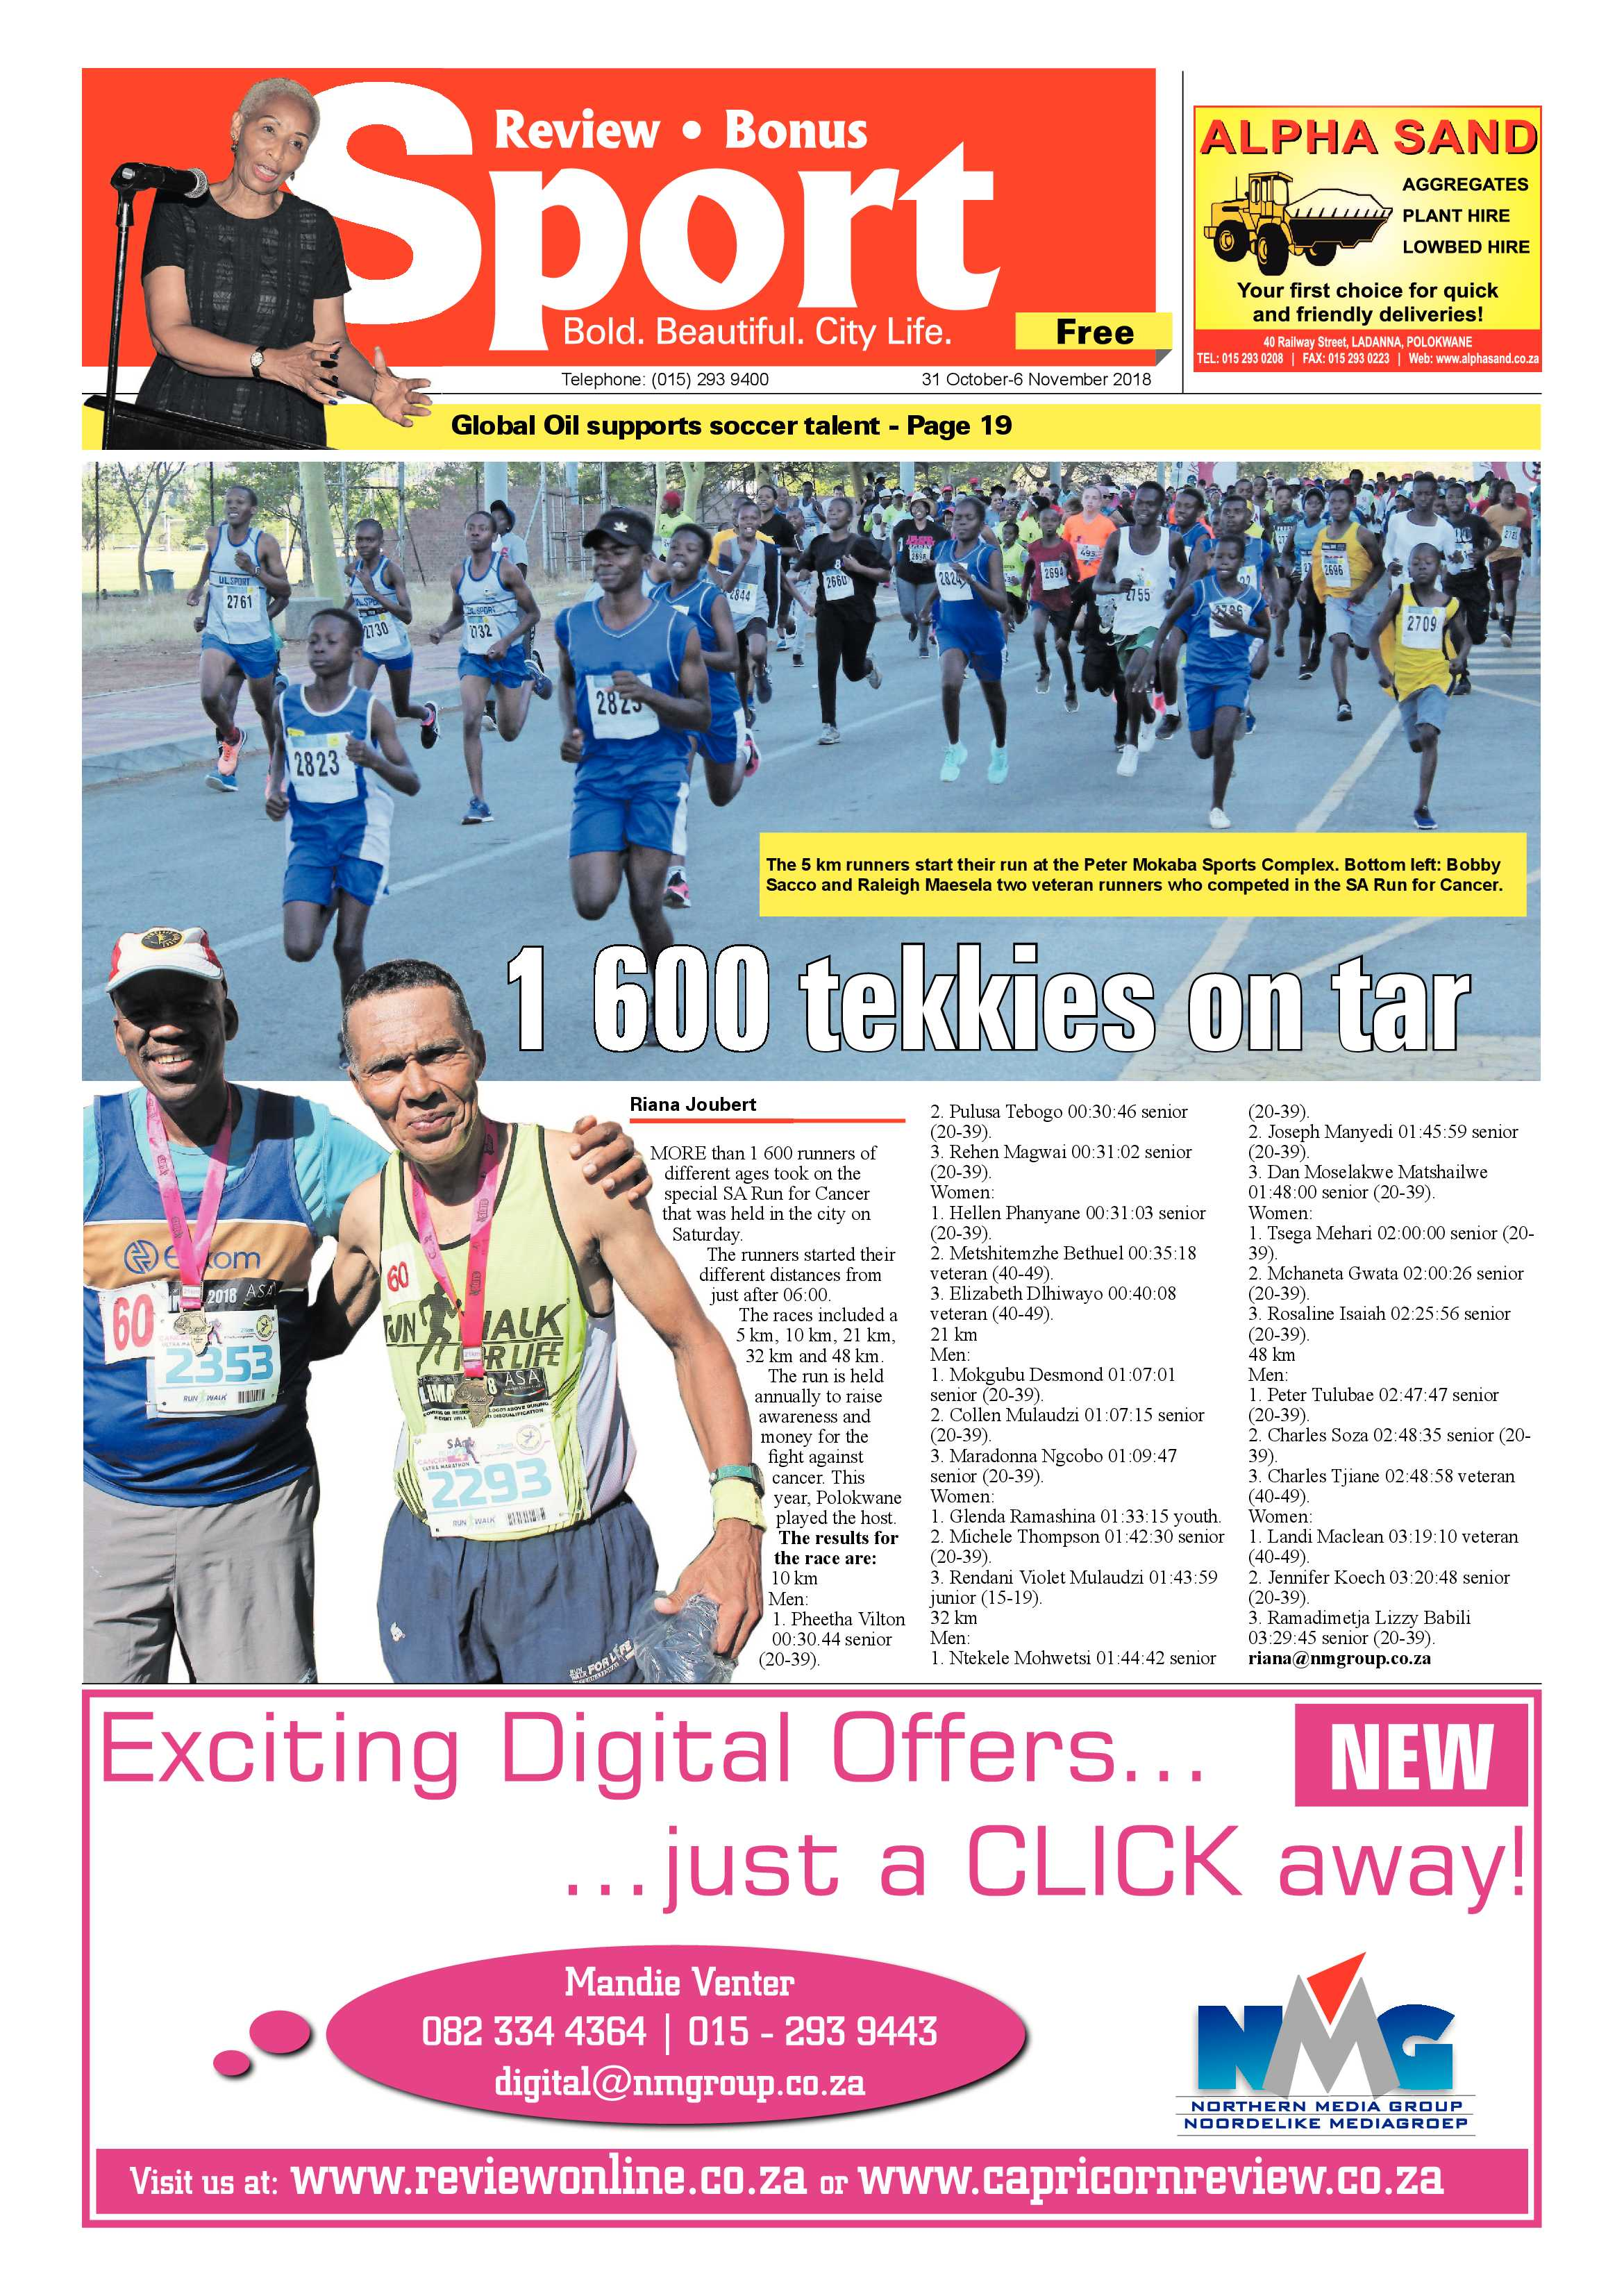 review-bonus-31-october-2018-epapers-page-20